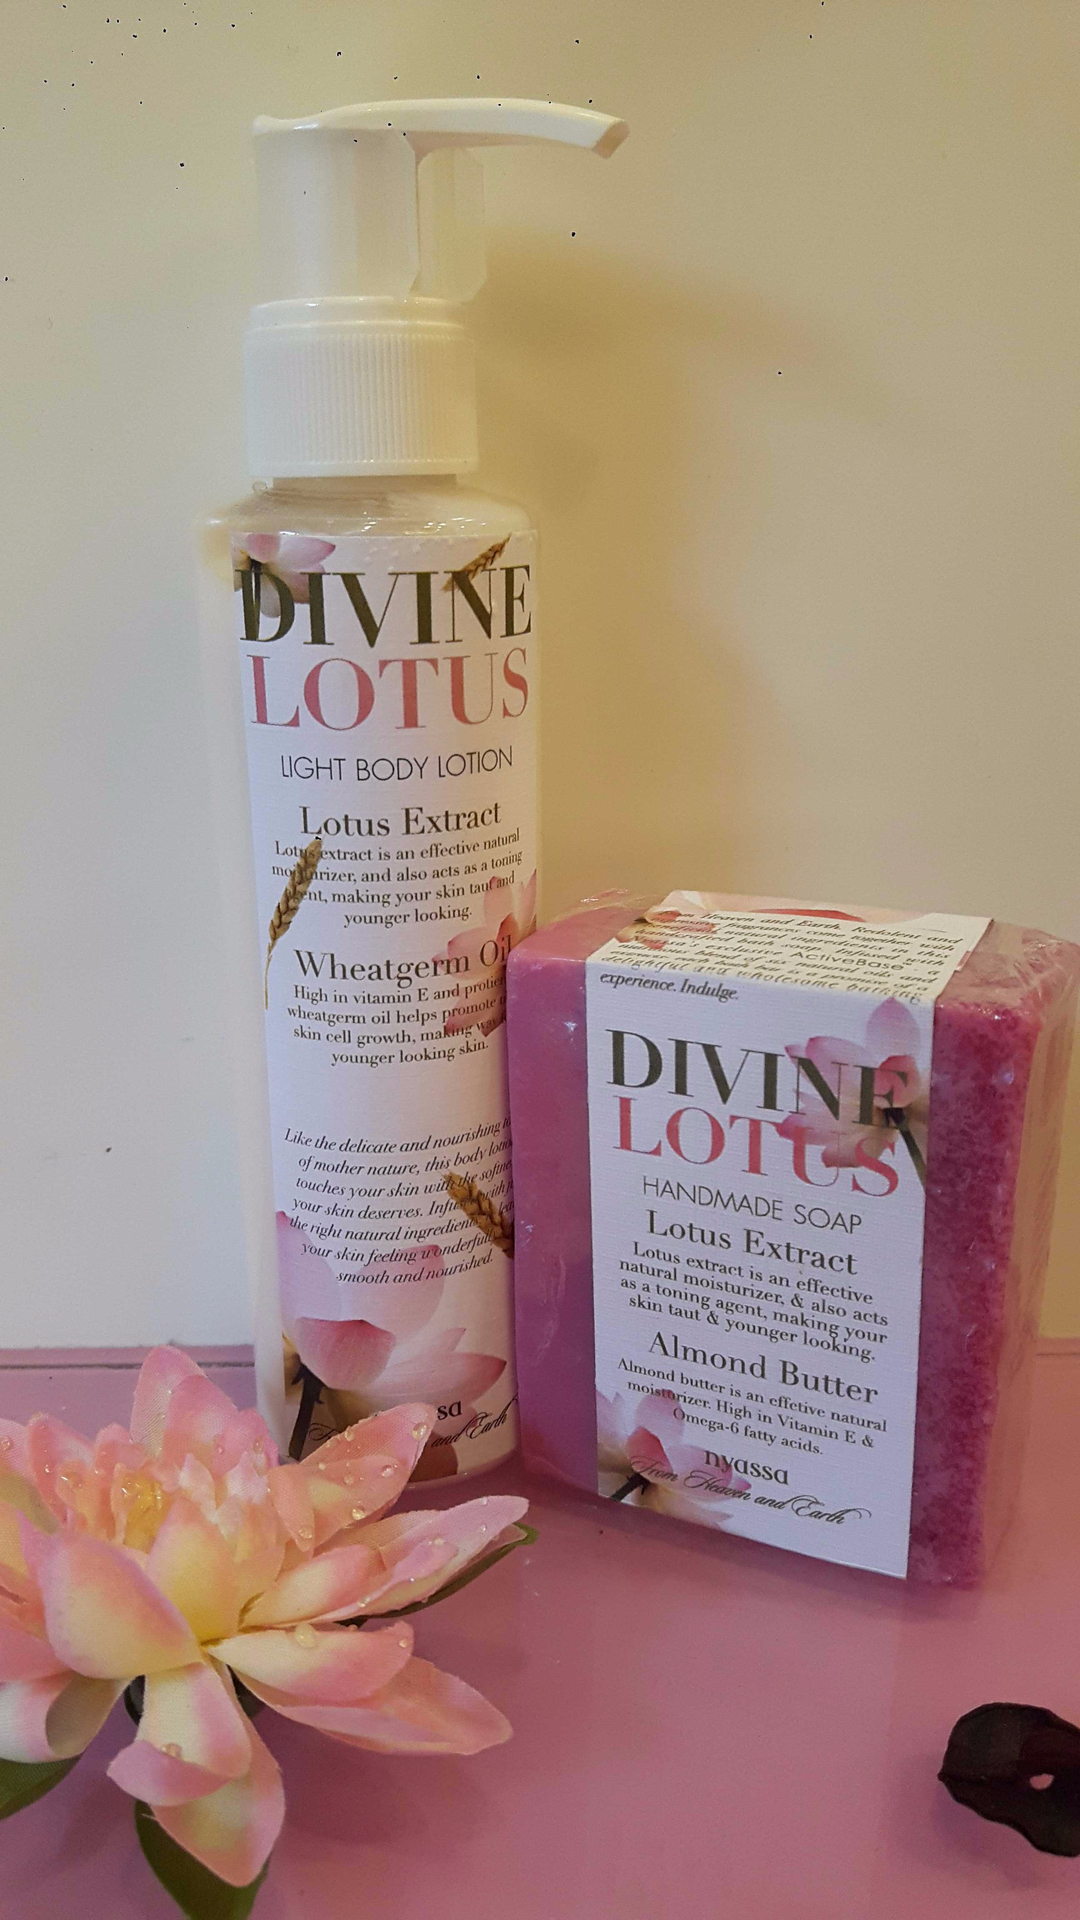 Nyassa Divine Lotus Handmade soap & Light Body Lotion Review image